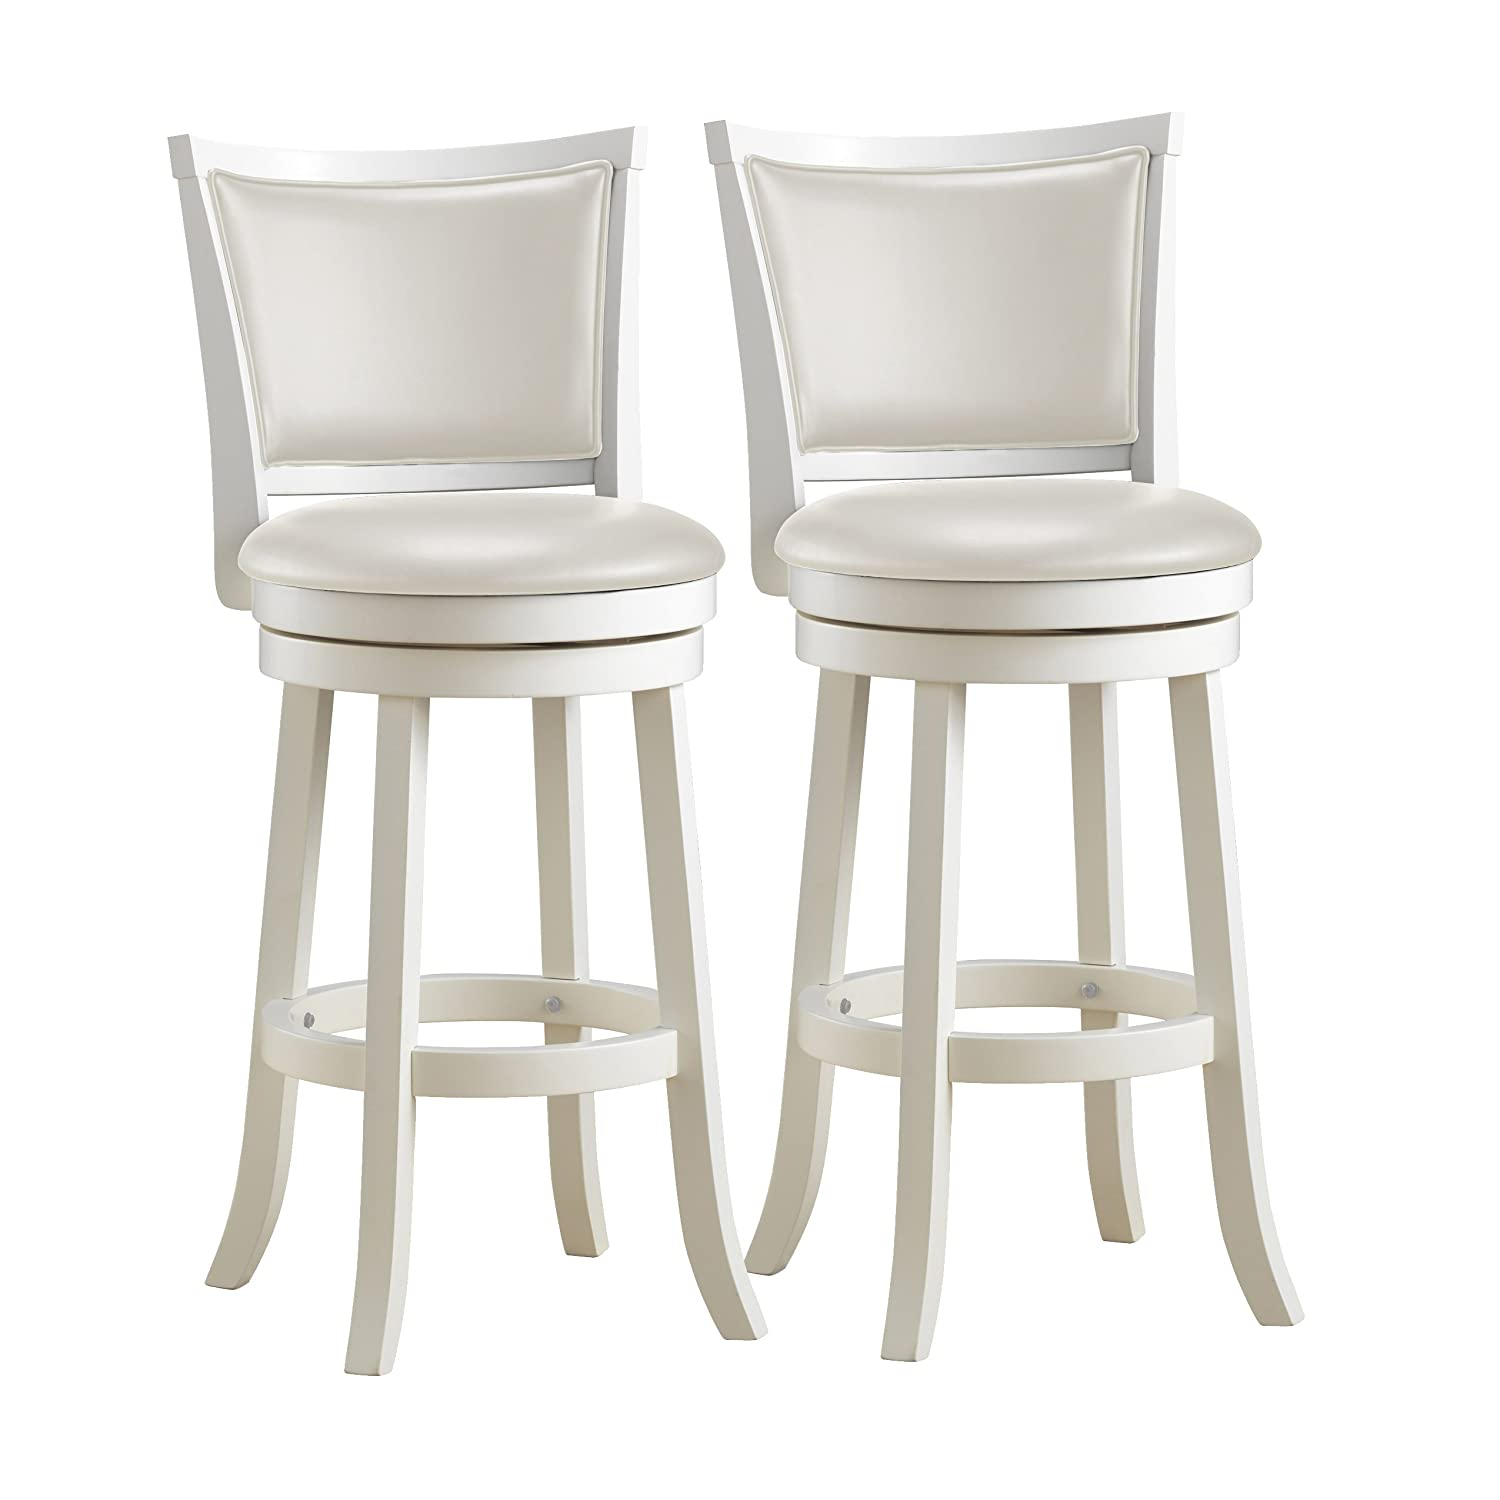 Amazon.com CorLiving DWG-119-B Woodgrove White Wash Wood Swivel Bar Height Barstool with Leatherette Seat 29u0027u0027 Seat Height Set of 2 Kitchen u0026 Dining  sc 1 st  Amazon.com & Amazon.com: CorLiving DWG-119-B Woodgrove White Wash Wood Swivel ... islam-shia.org